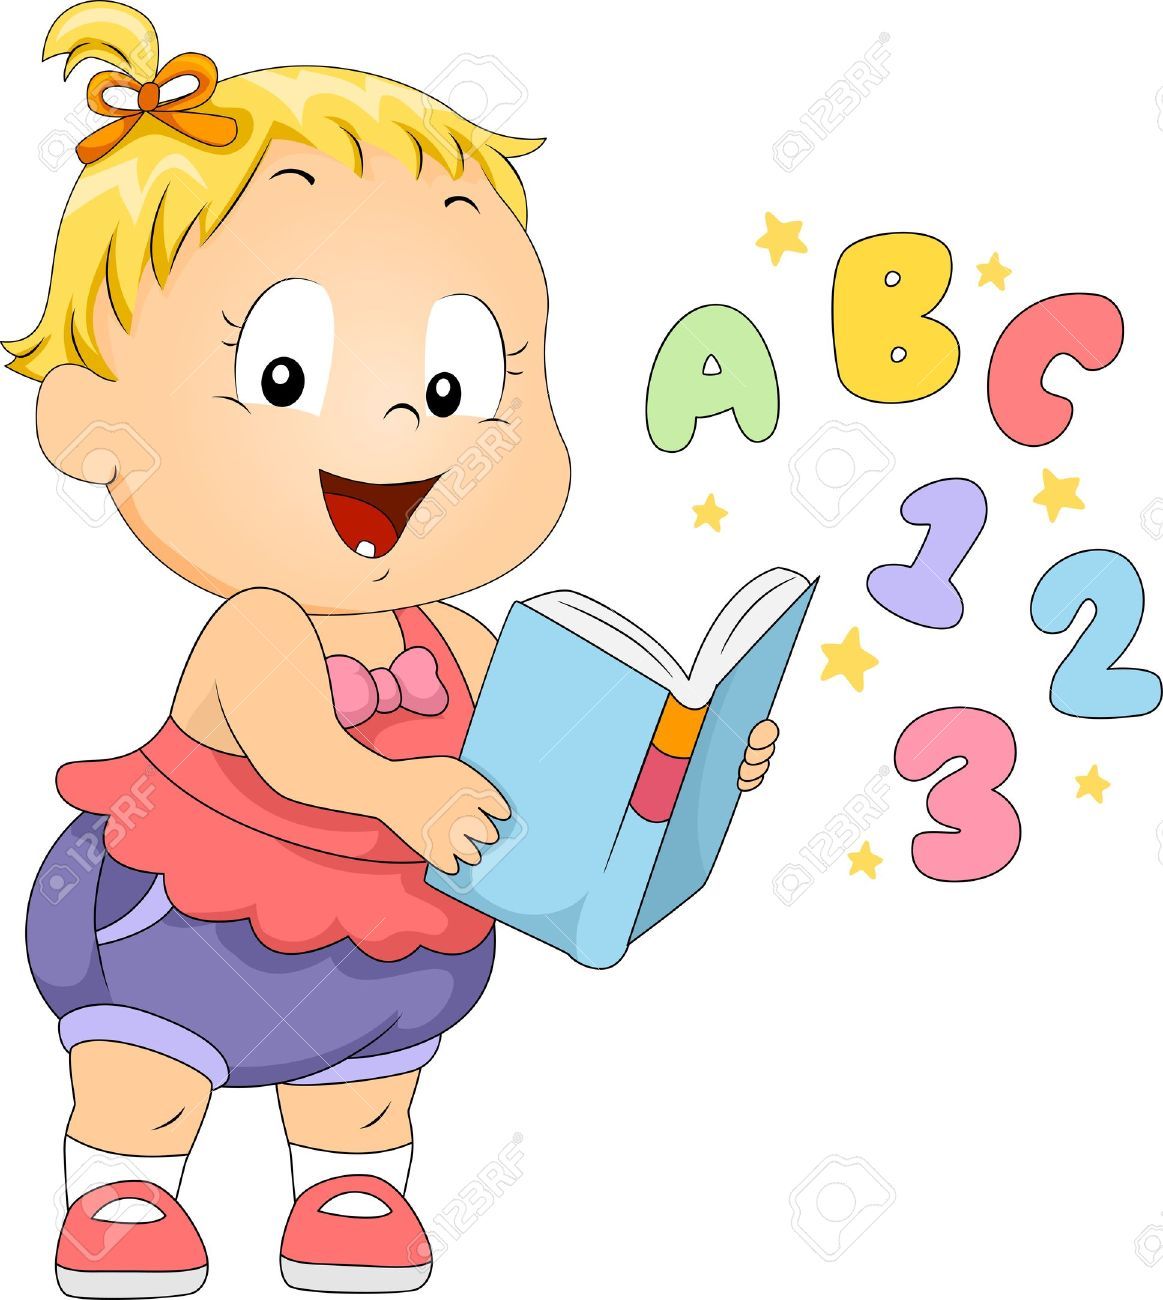 Illustration Of A Toddler Reading A Book Stock Photo, Picture And.